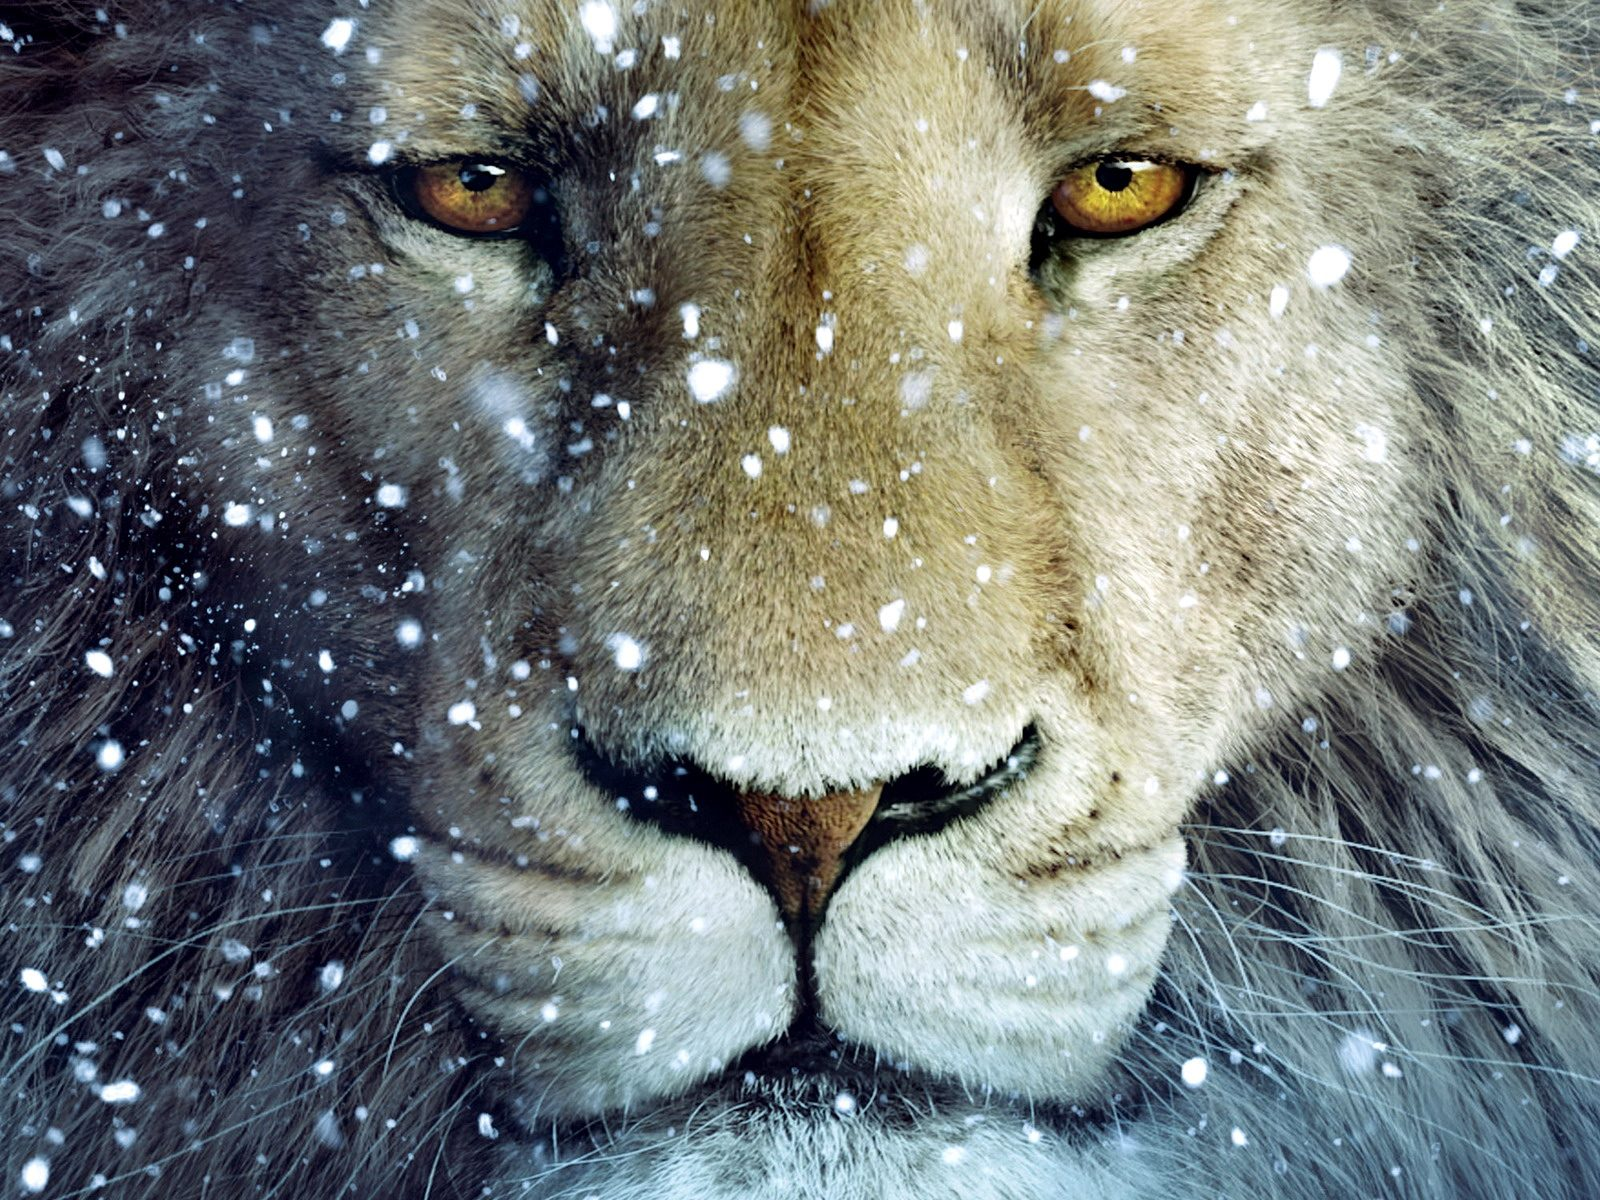 http://3.bp.blogspot.com/-gBNkI6JvpgA/TuOXw_h1CAI/AAAAAAAABds/-YzJMpImI4I/s1600/Aslan-Lion-3-The-Chronicles-of-Narnia-Wallpaper.jpg